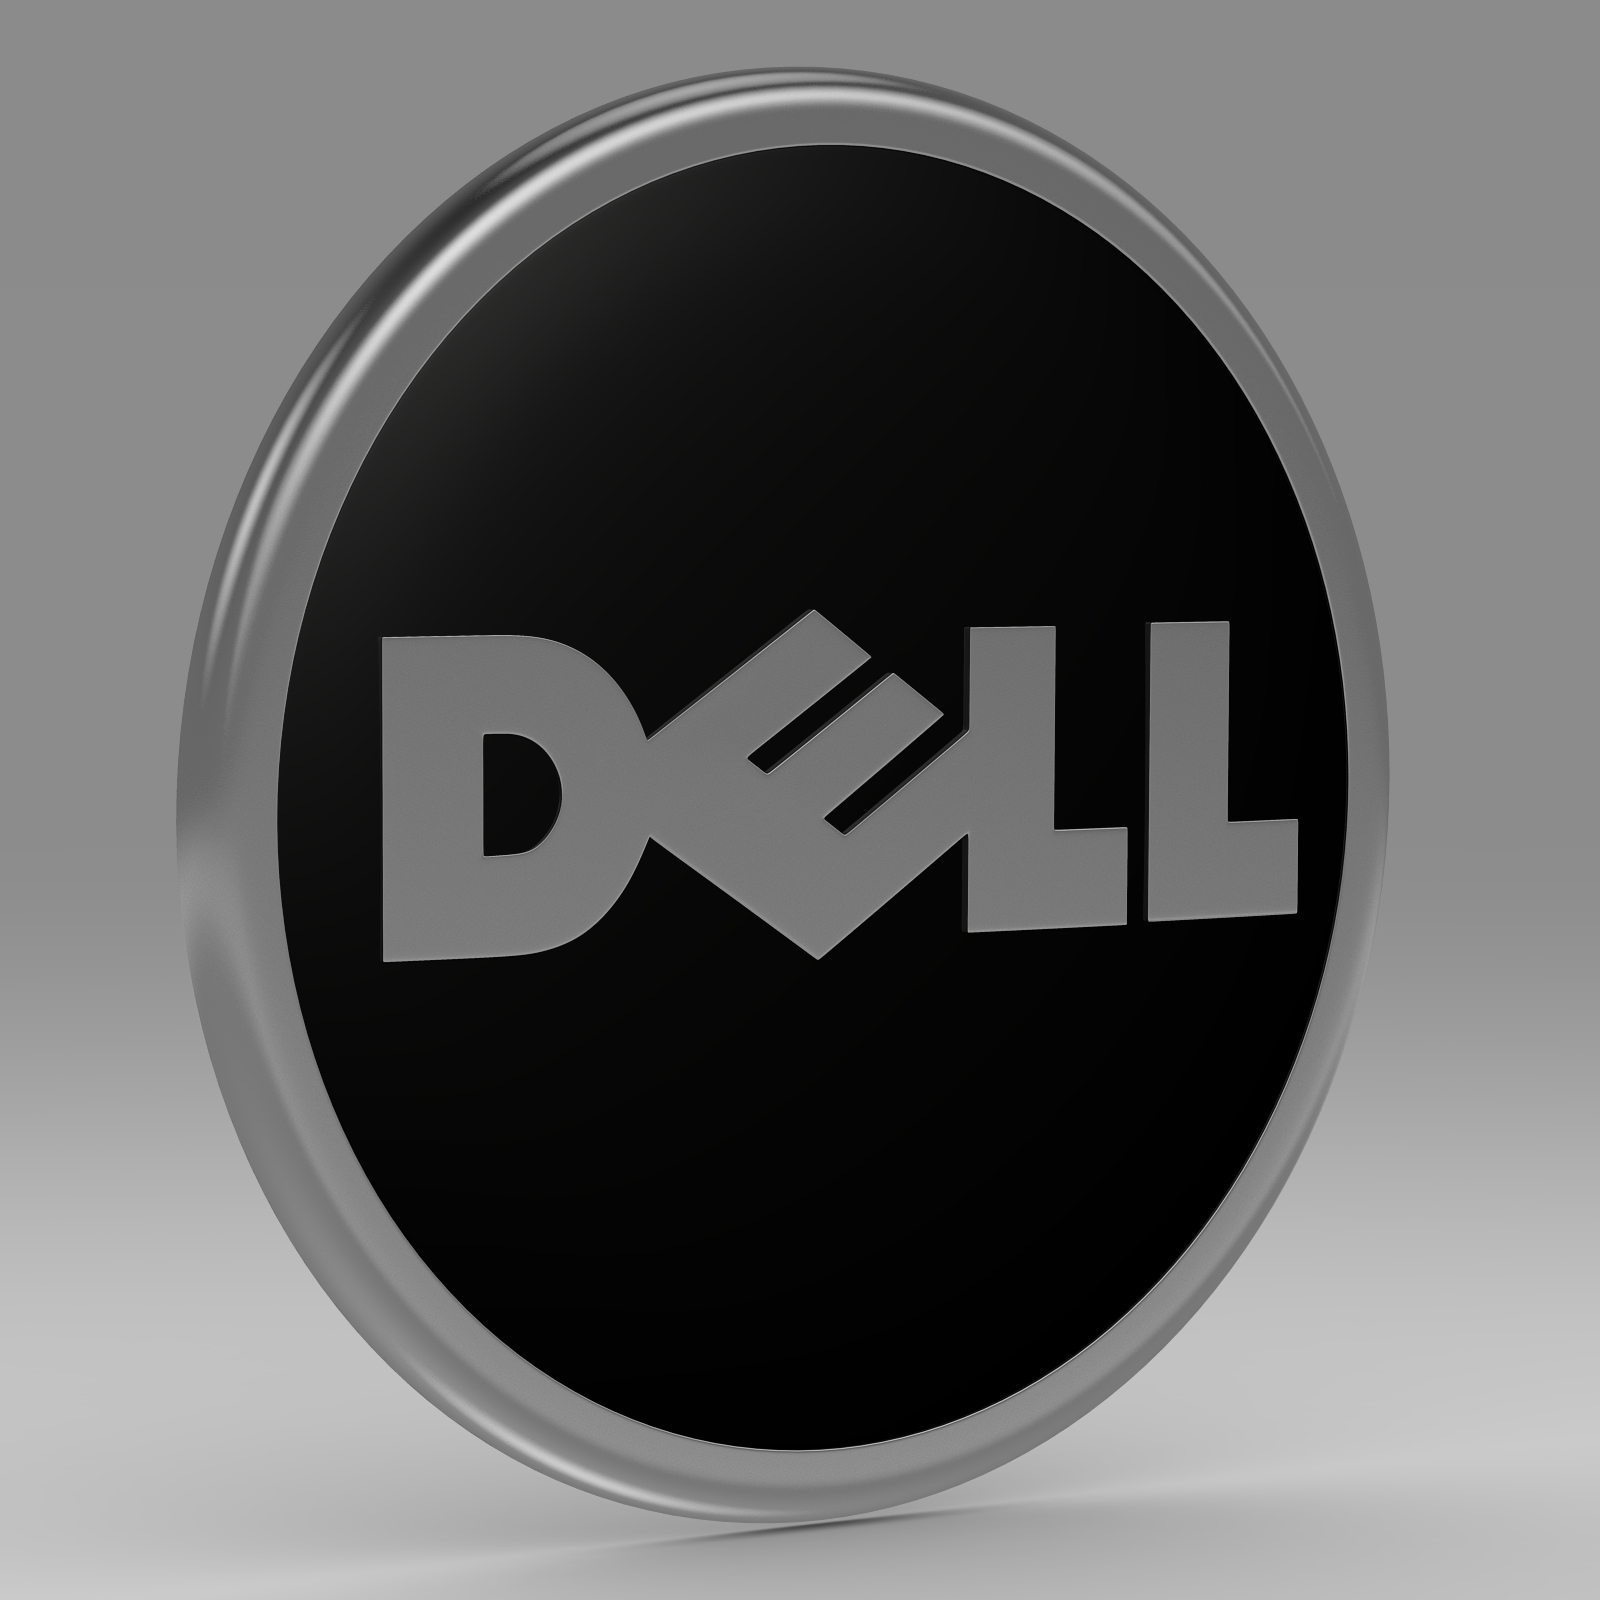 dell logo 3d model 3ds fbx c4d lwo ma mb hrc xsi obj 223610